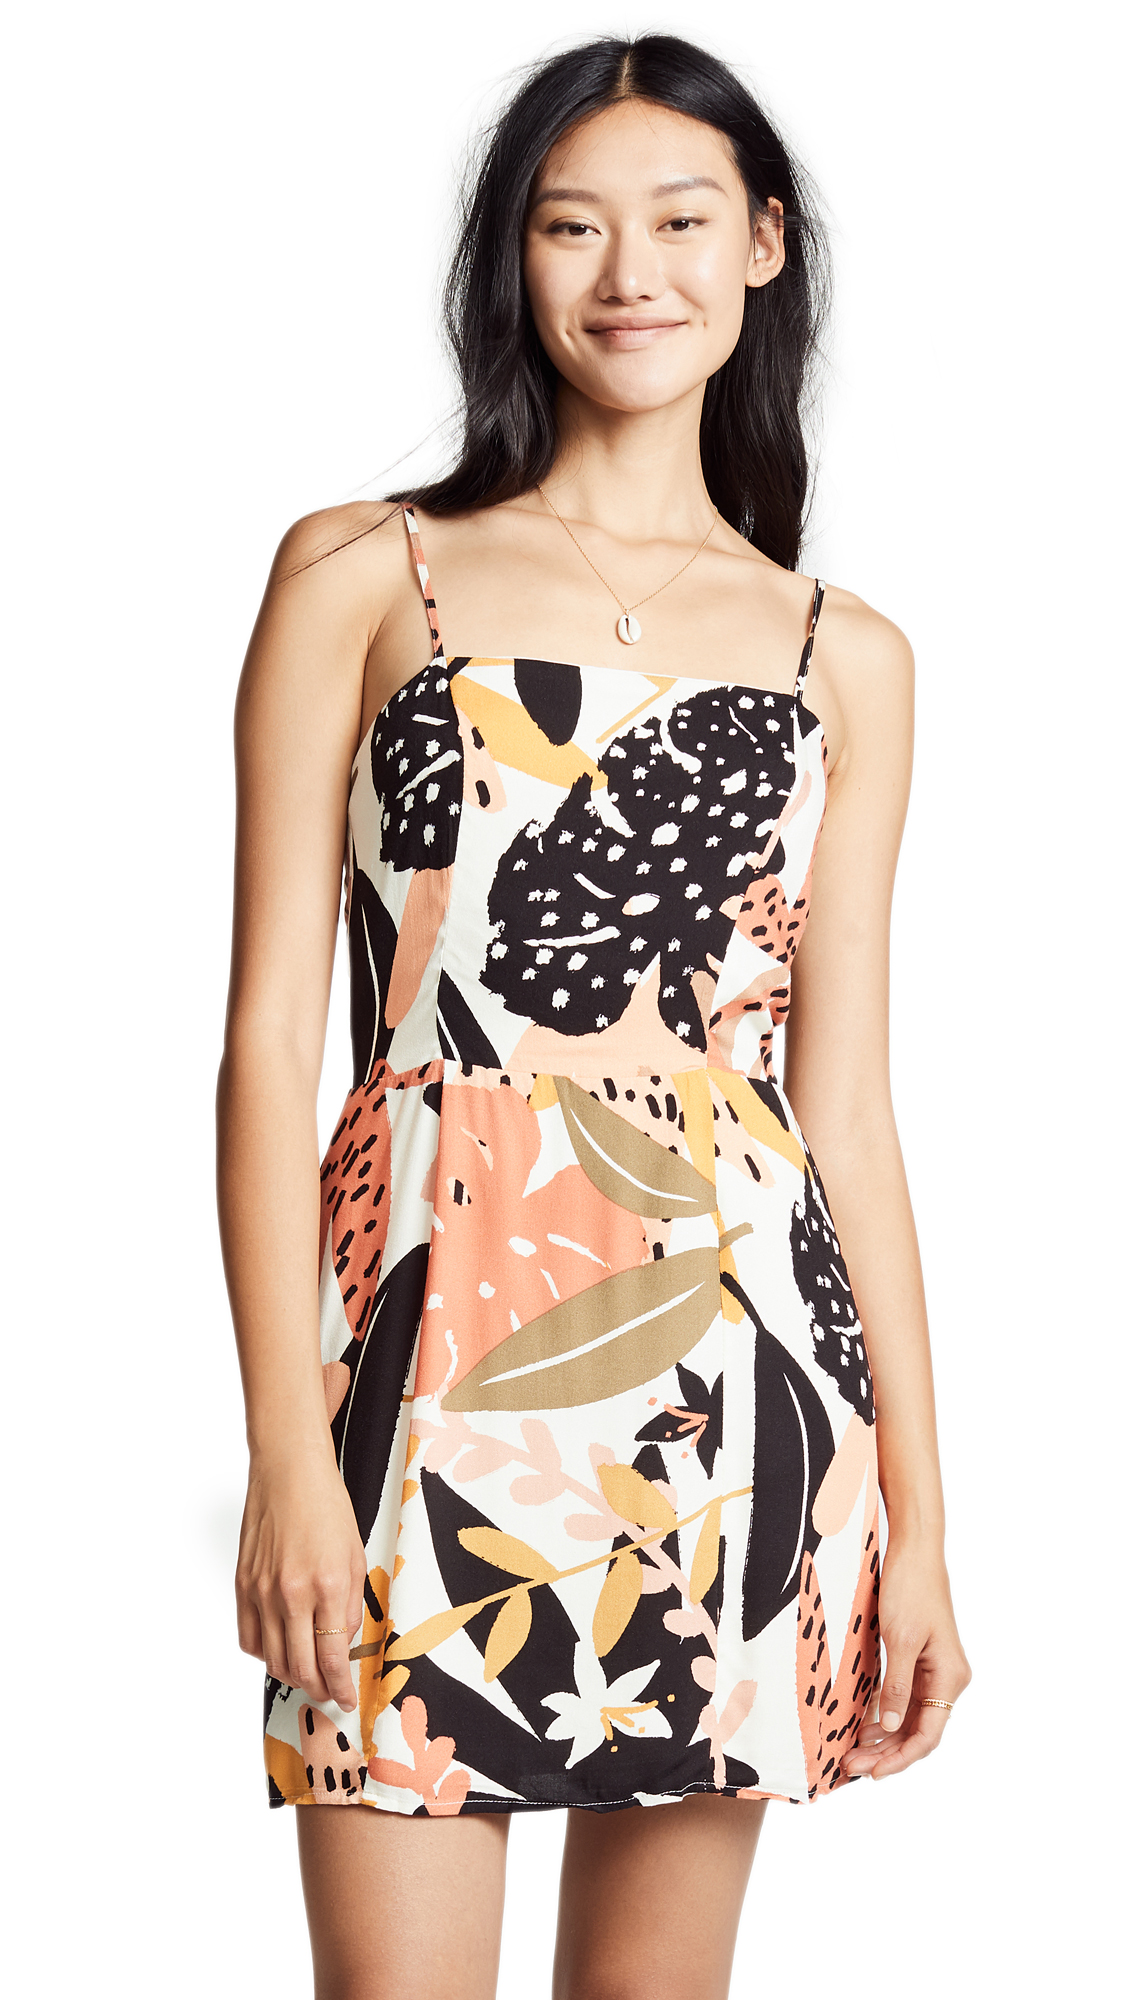 MINKPINK Fever Mini Dress in Multi